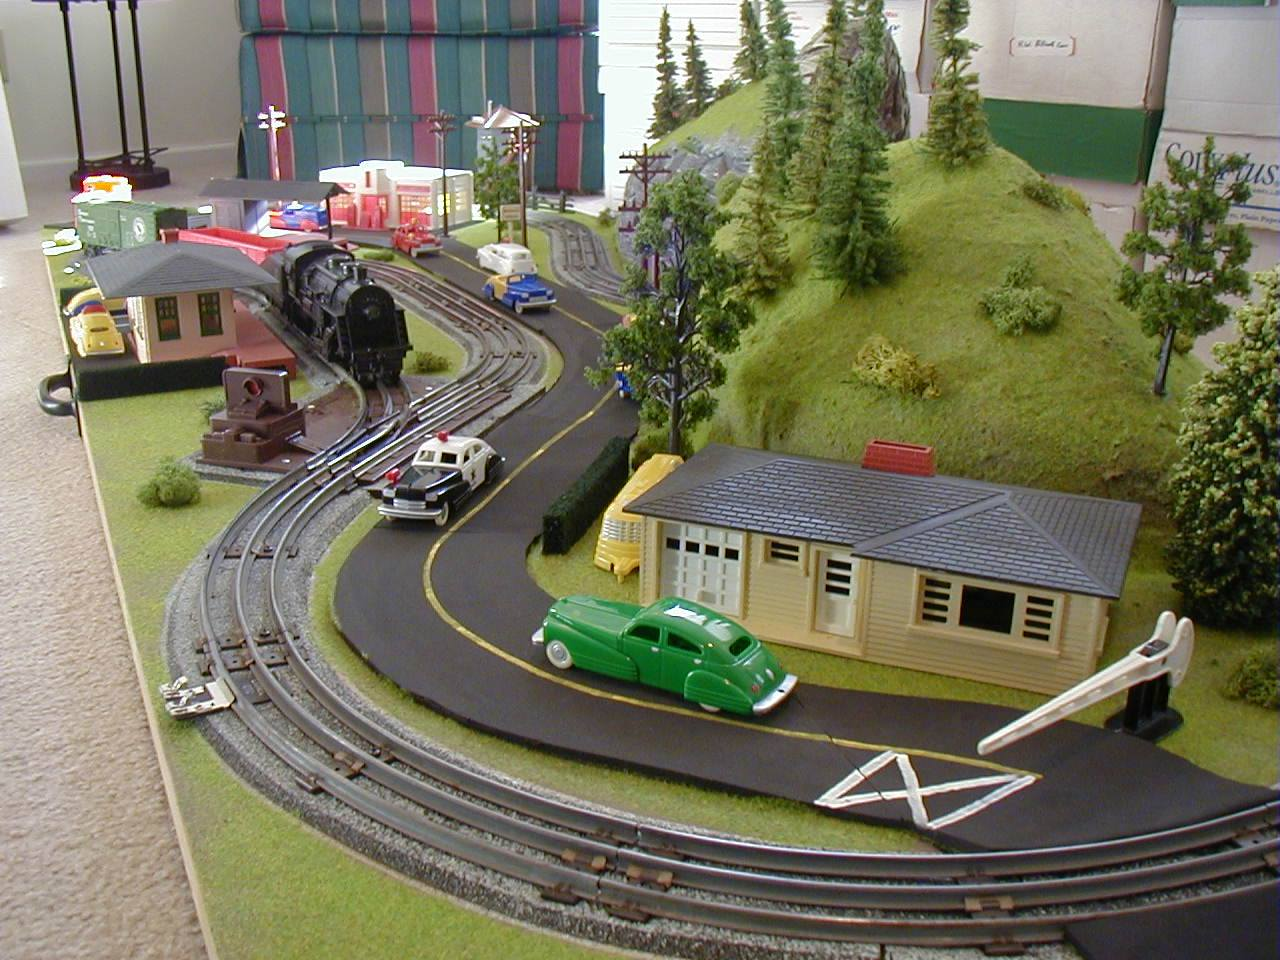 Wiring diagram together with ho model train layout plans moreover ho -  Showthread Together With Viewtopic Furthermore Layout Also Watch In Addition O Scale Layouts 4x8 On